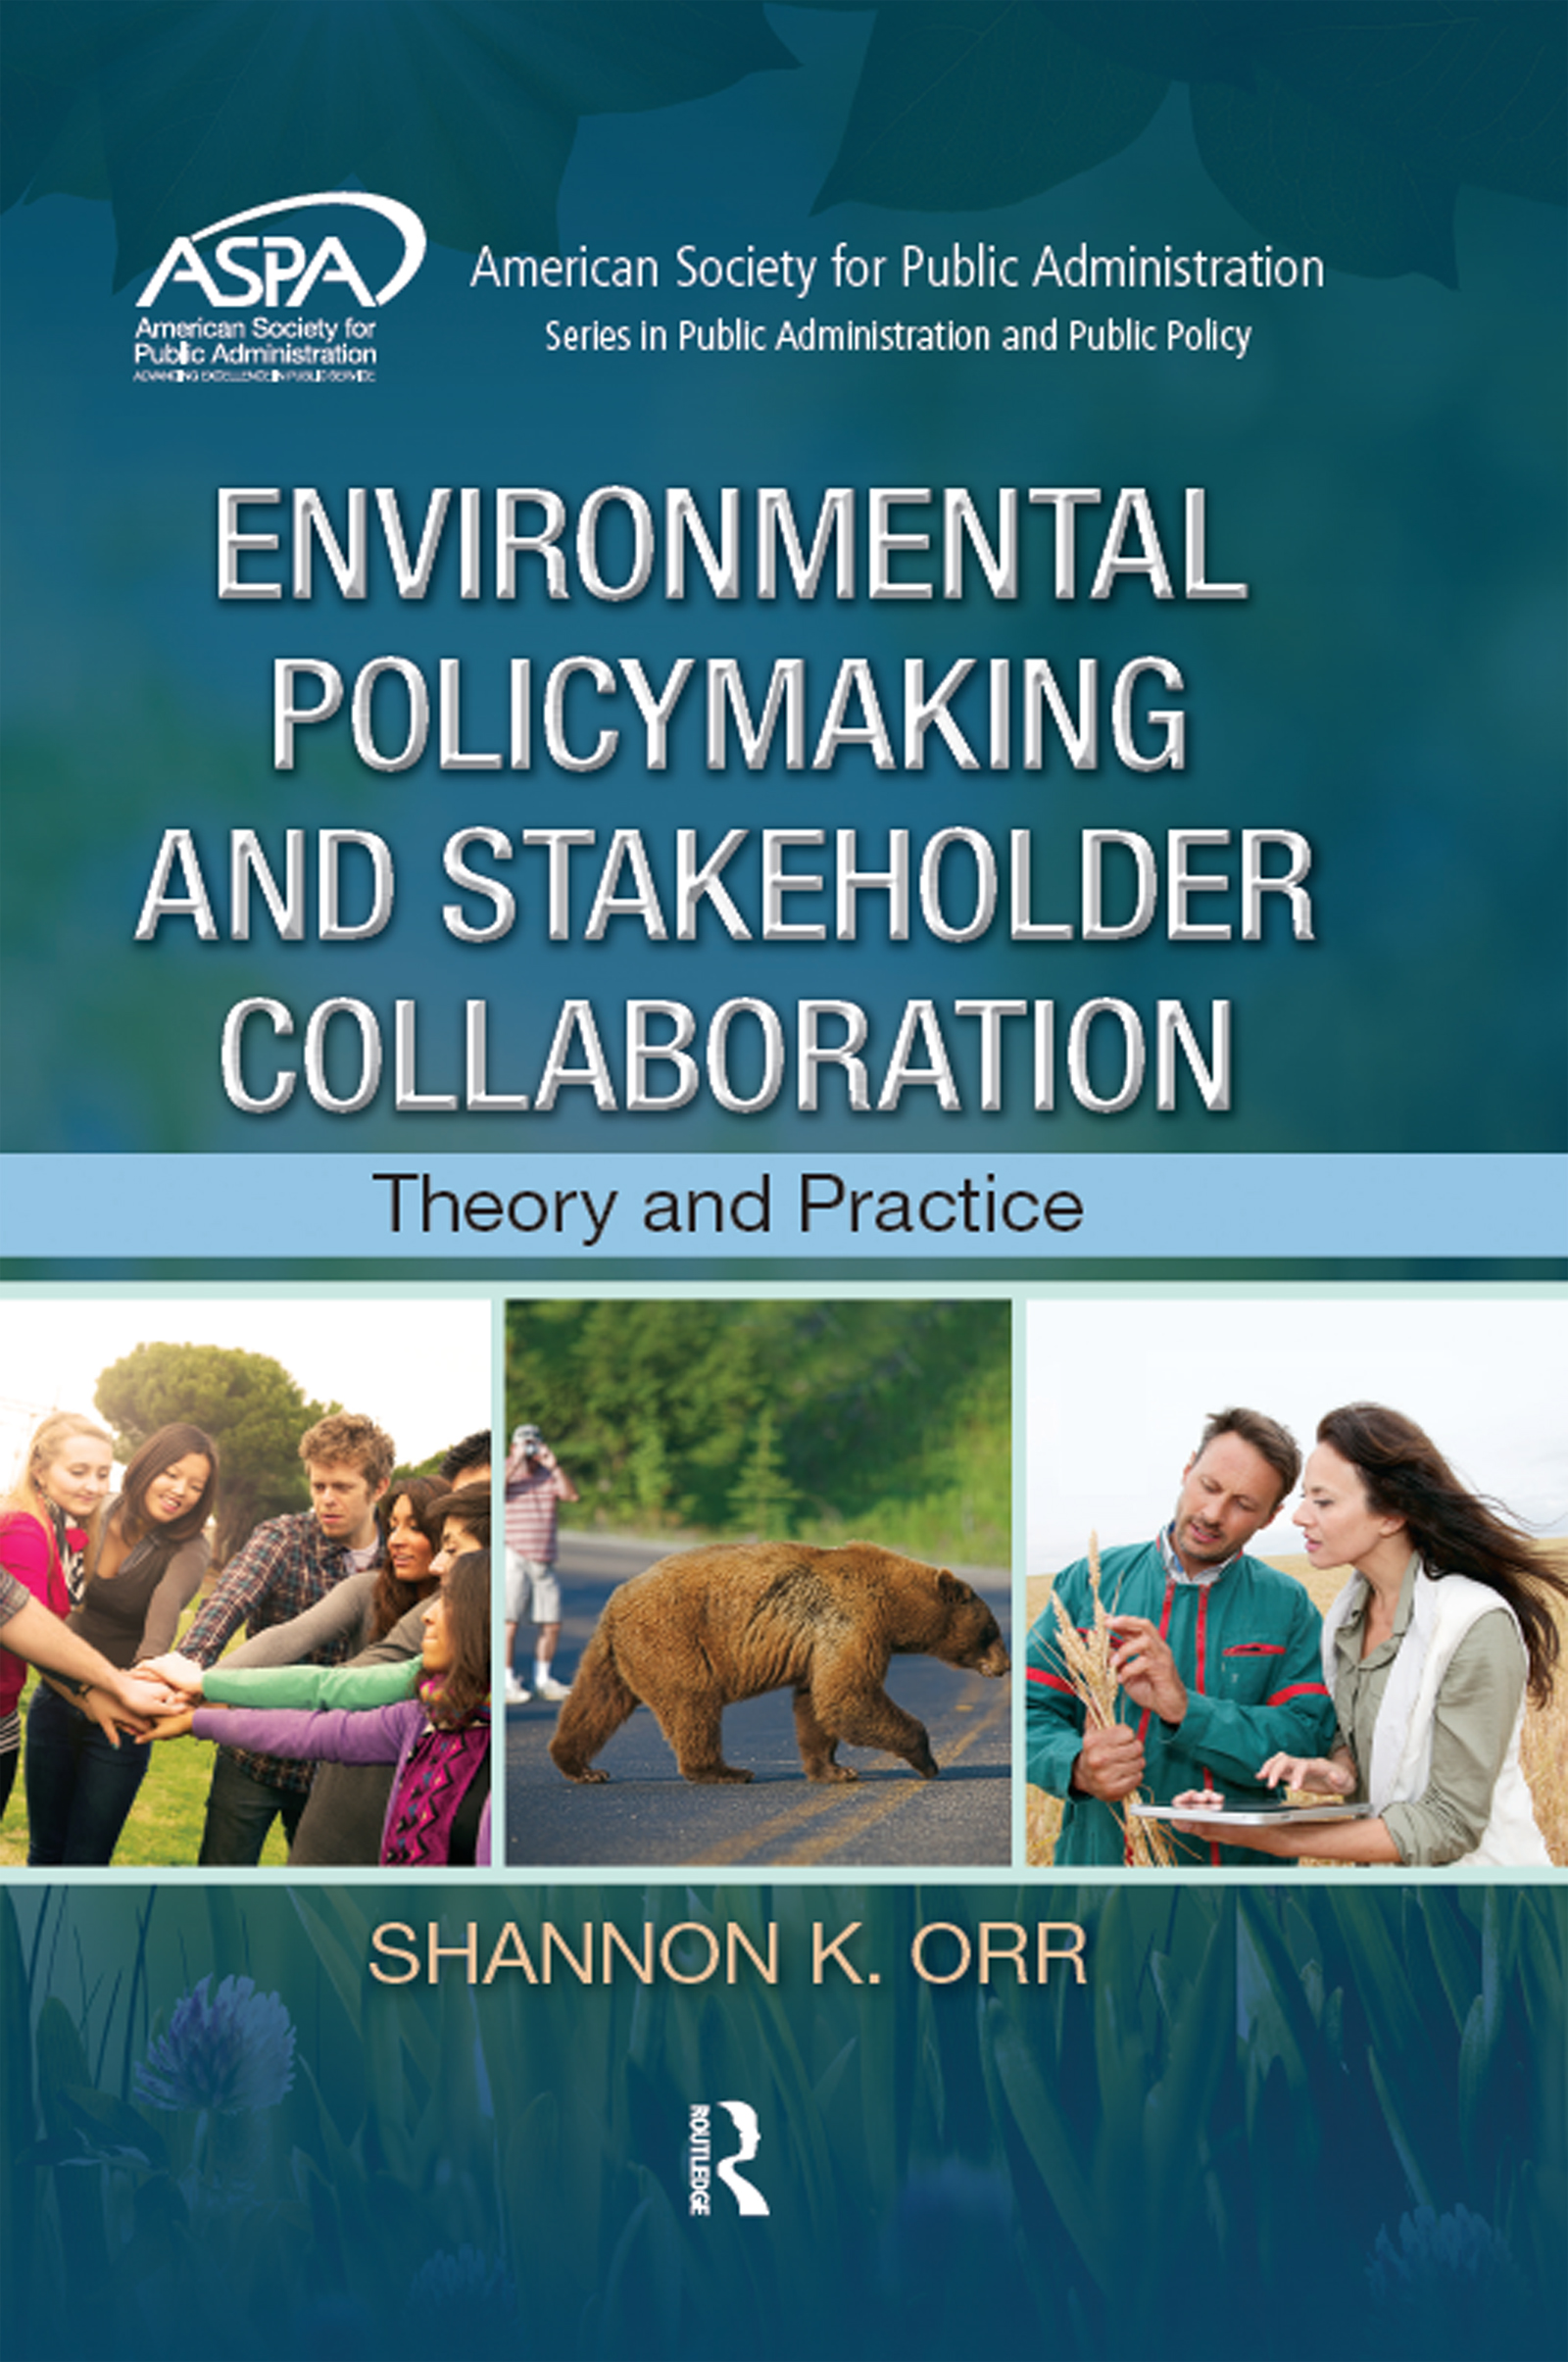 Environmental Policymaking and Stakeholder Collaboration